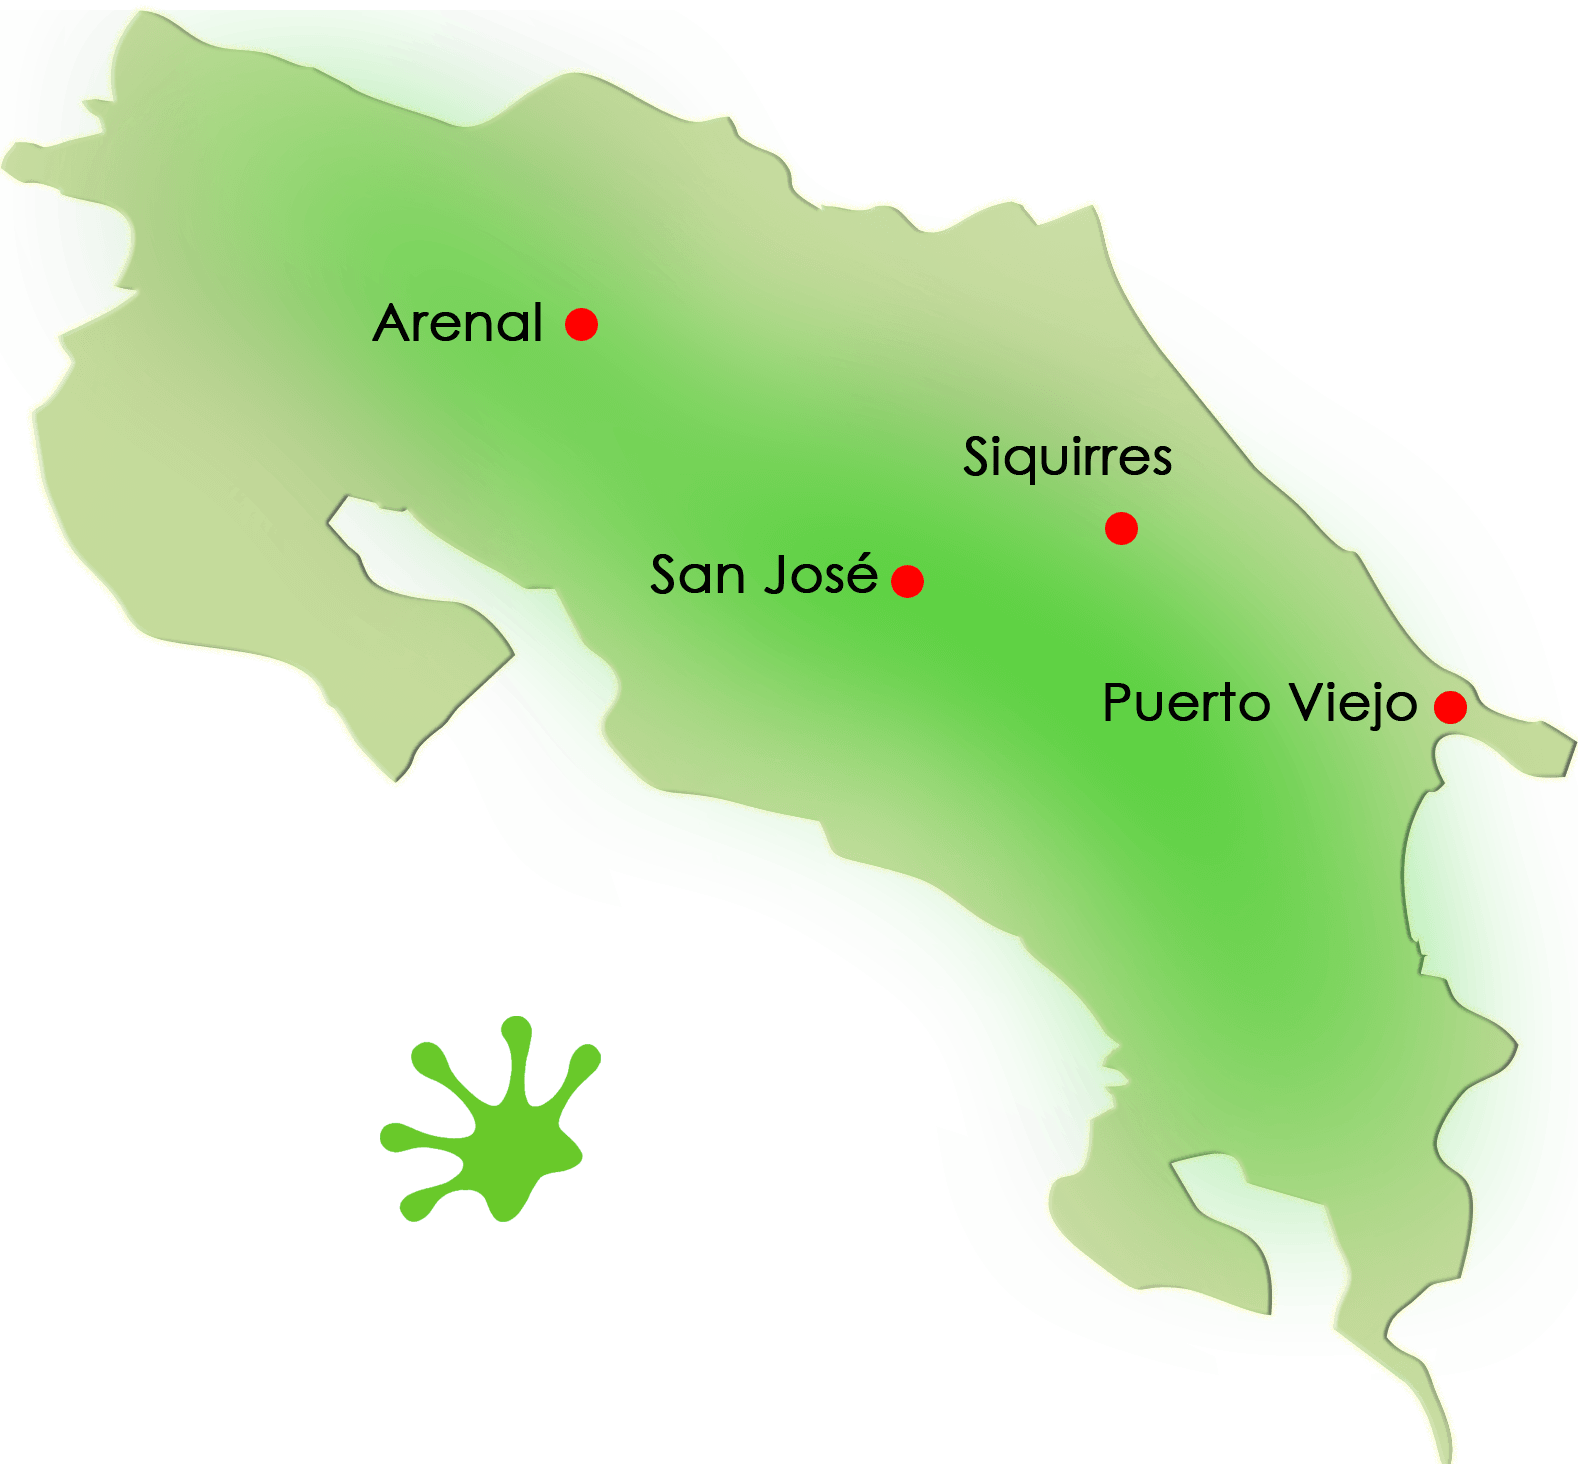 Gecko Trail | What to Do in Costa Rica - SJ-PV-AR-SIQ